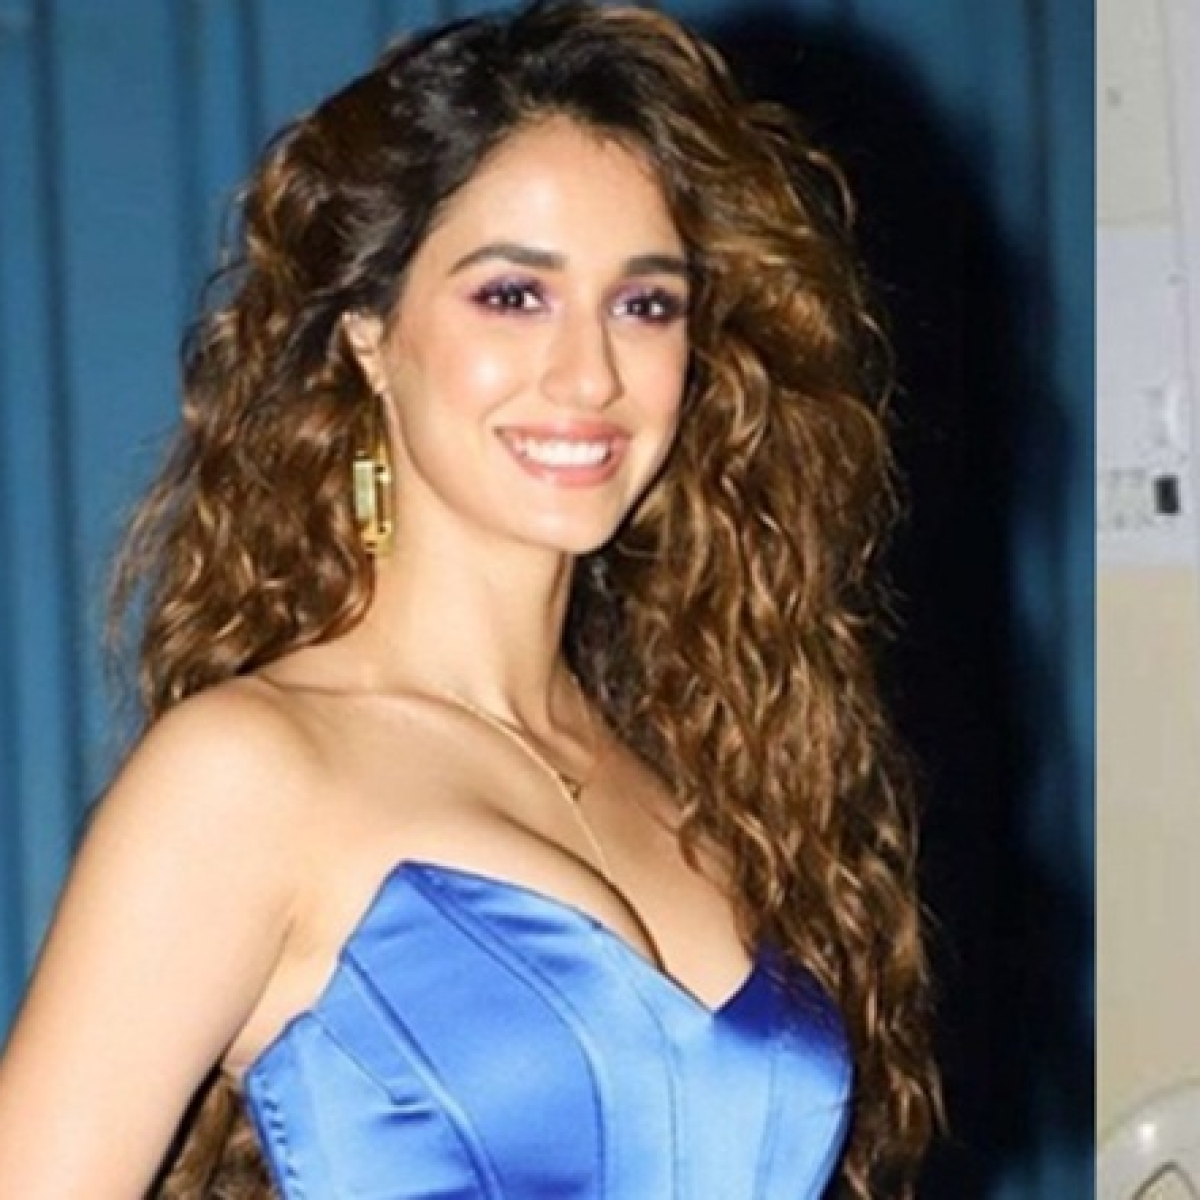 Disha Patani's picture from school days shows puberty hit her like a truck